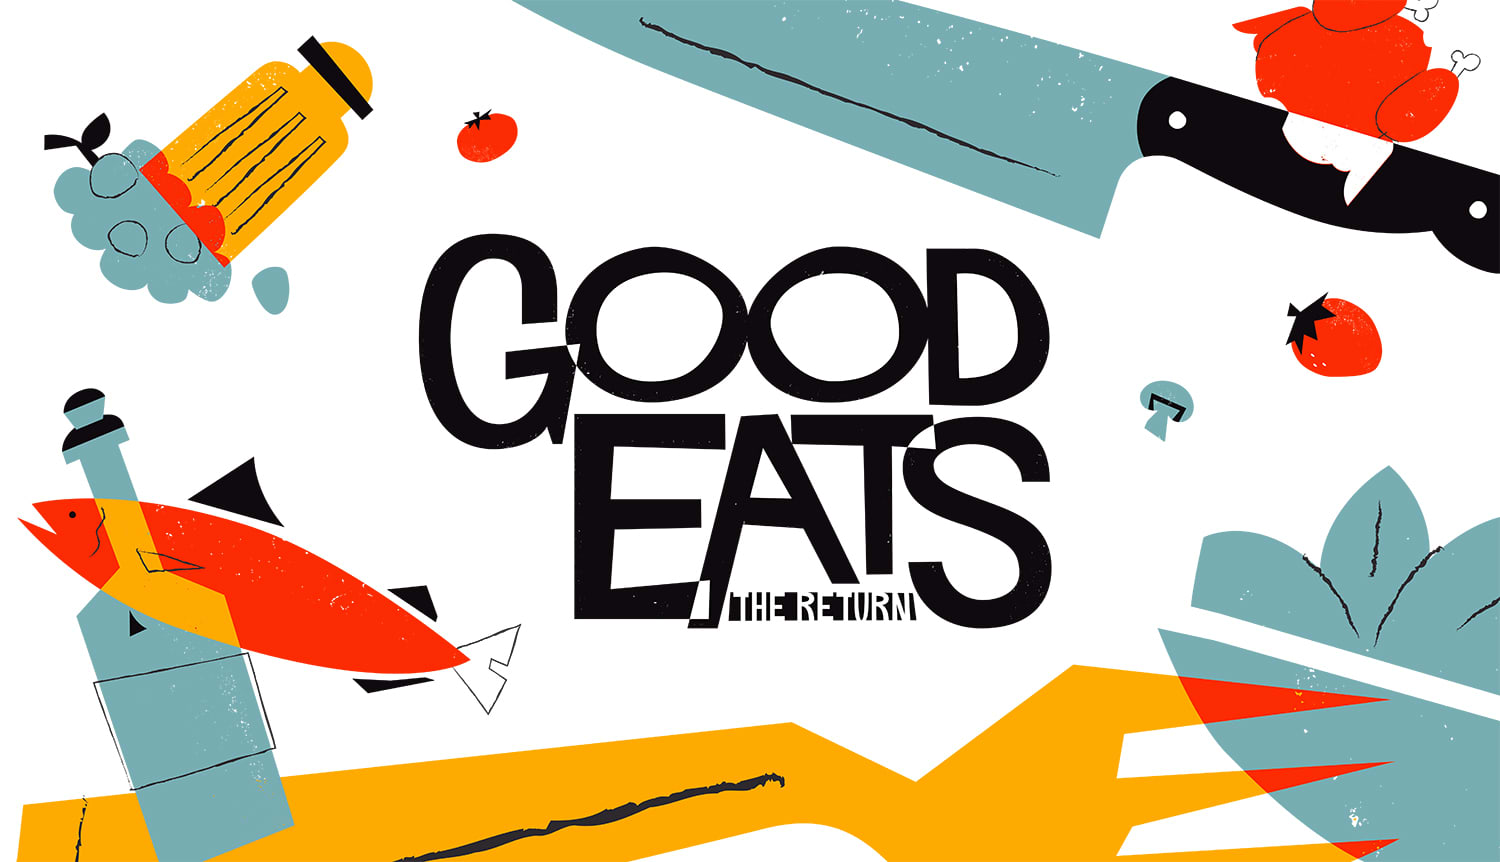 'Good Eats: The Reload' Branding